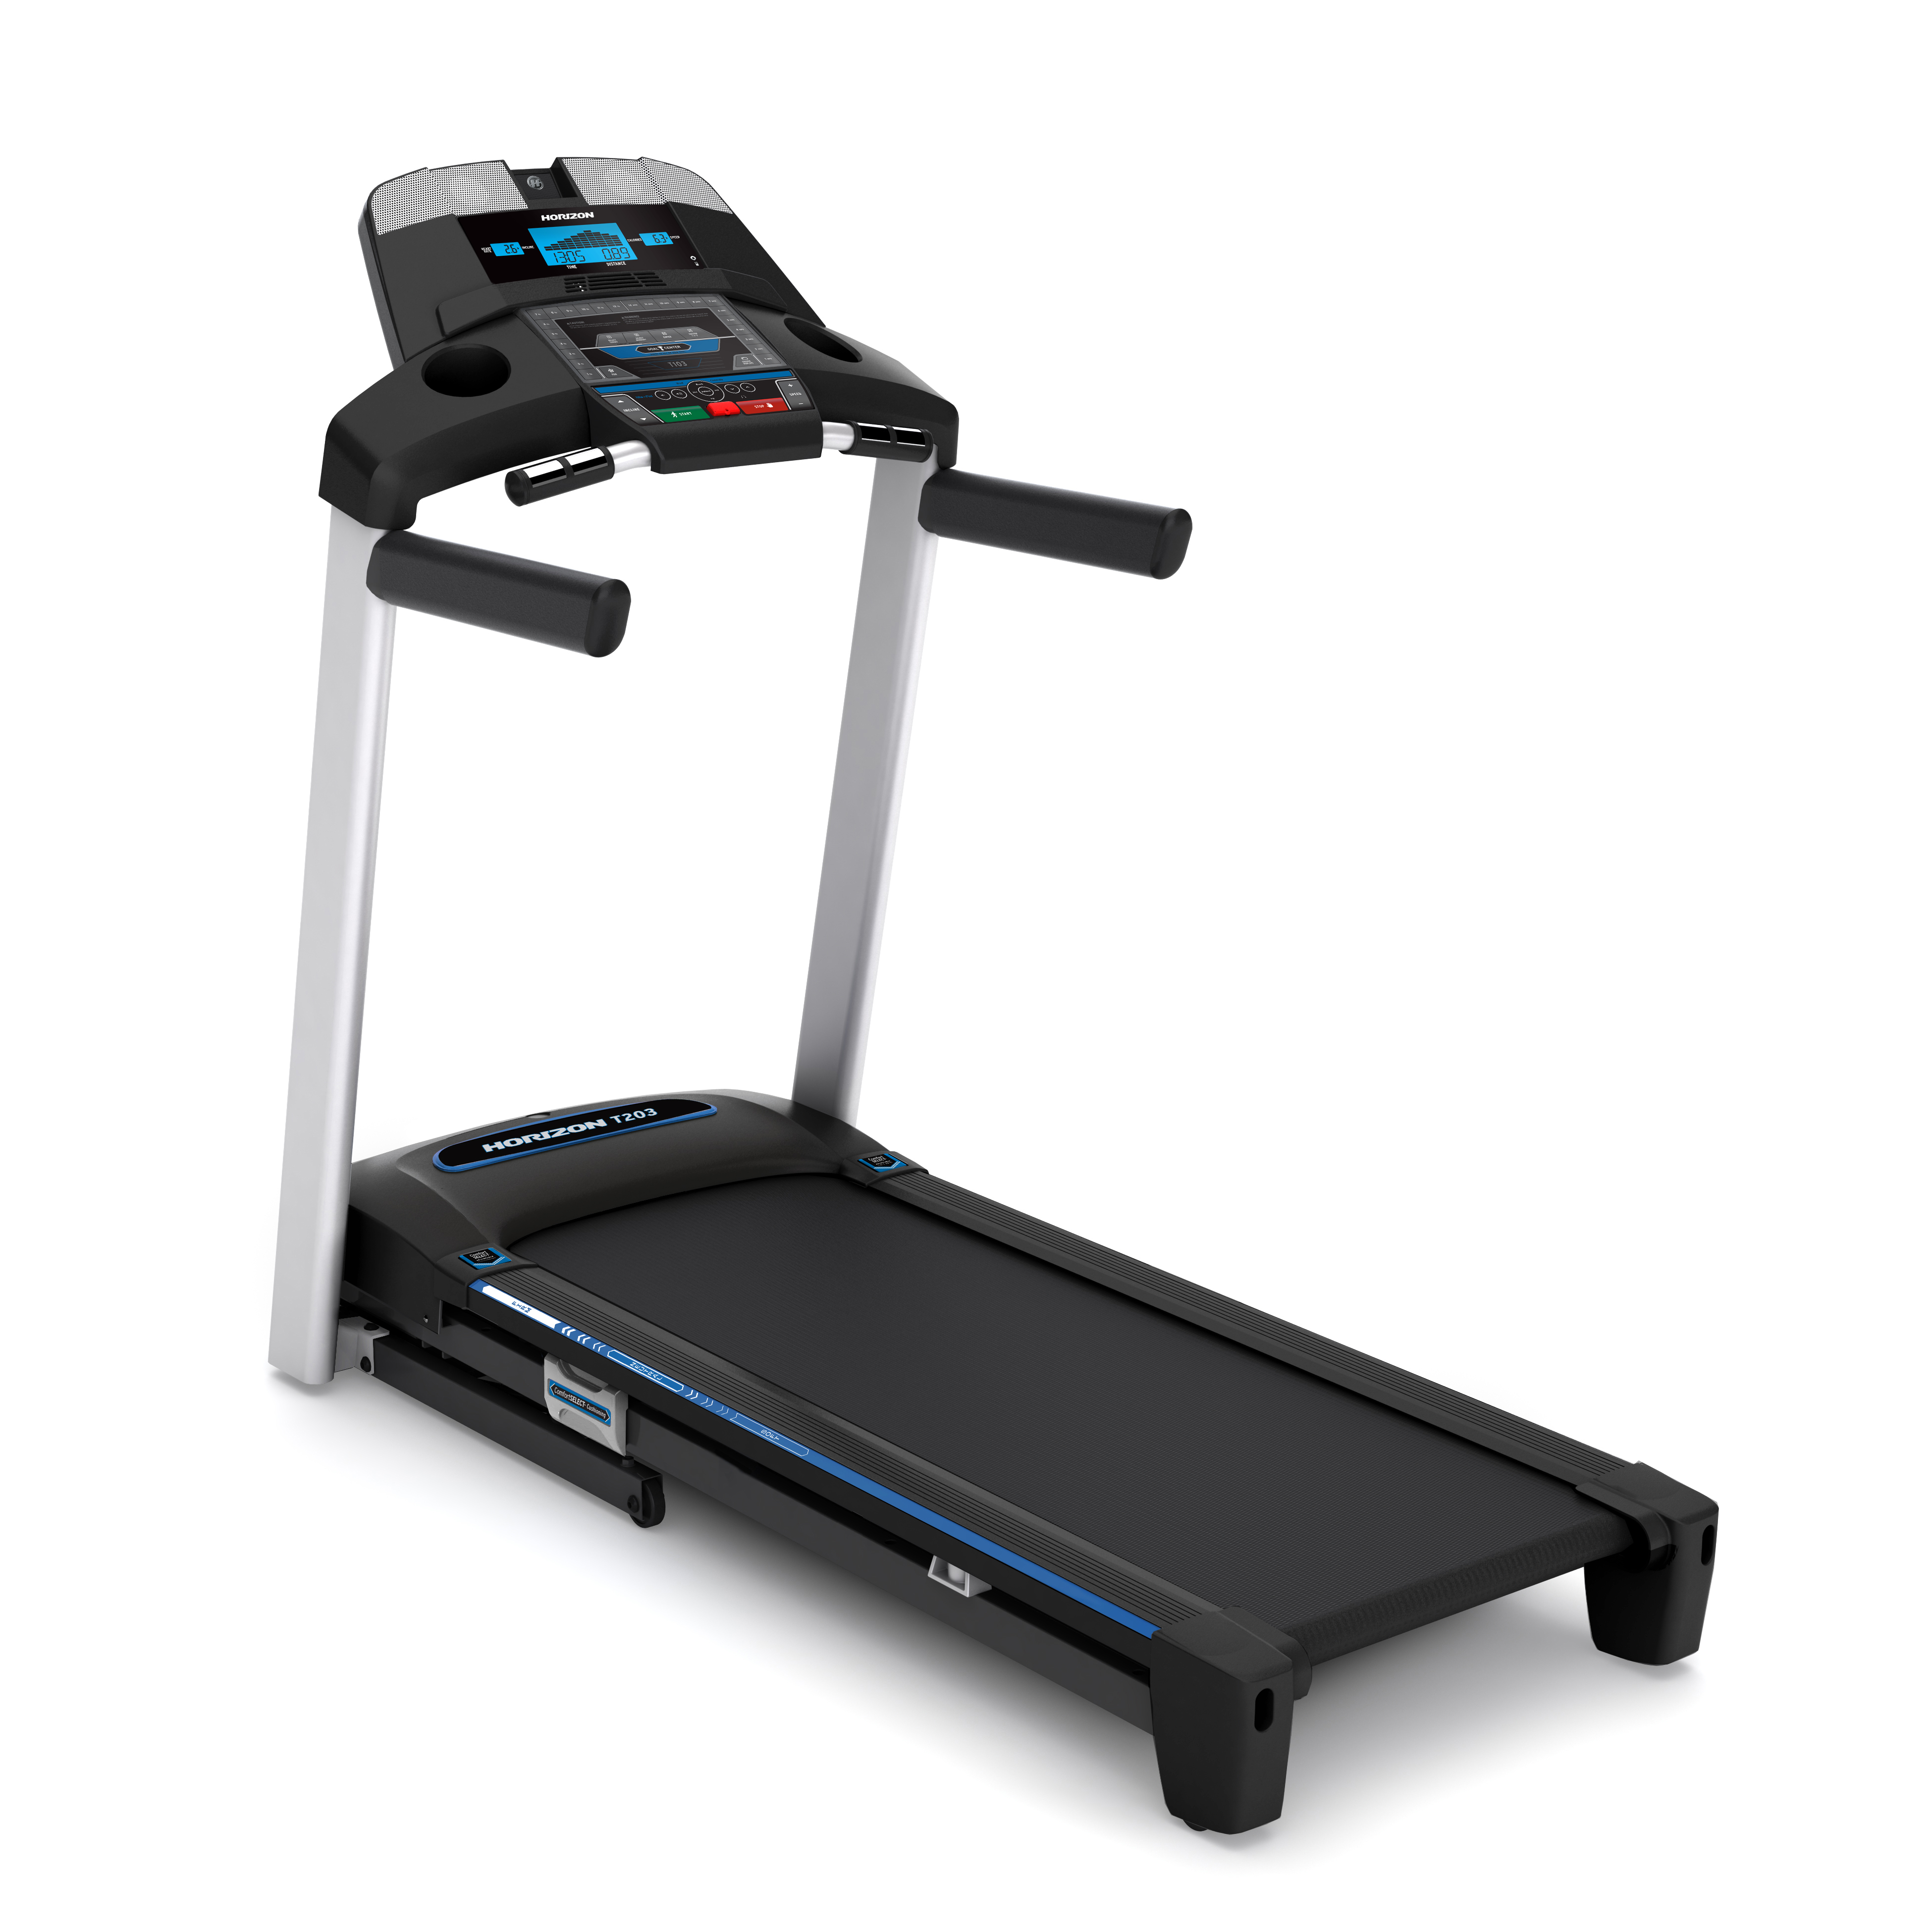 Horizon T203 Treadmill Treadmill 0 0 Know How To Decrease Belly Fat With Fat Burning Supplements